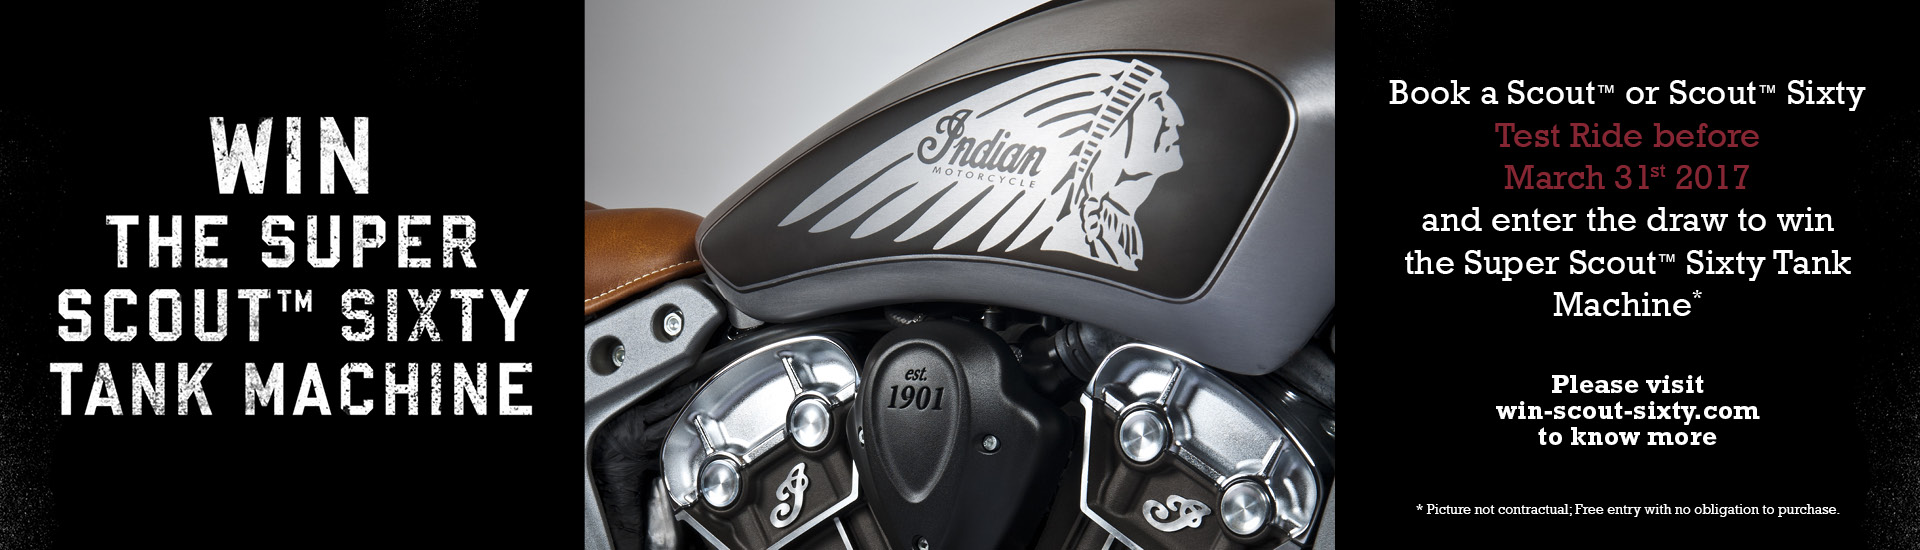 Indian Scout Tank Machine